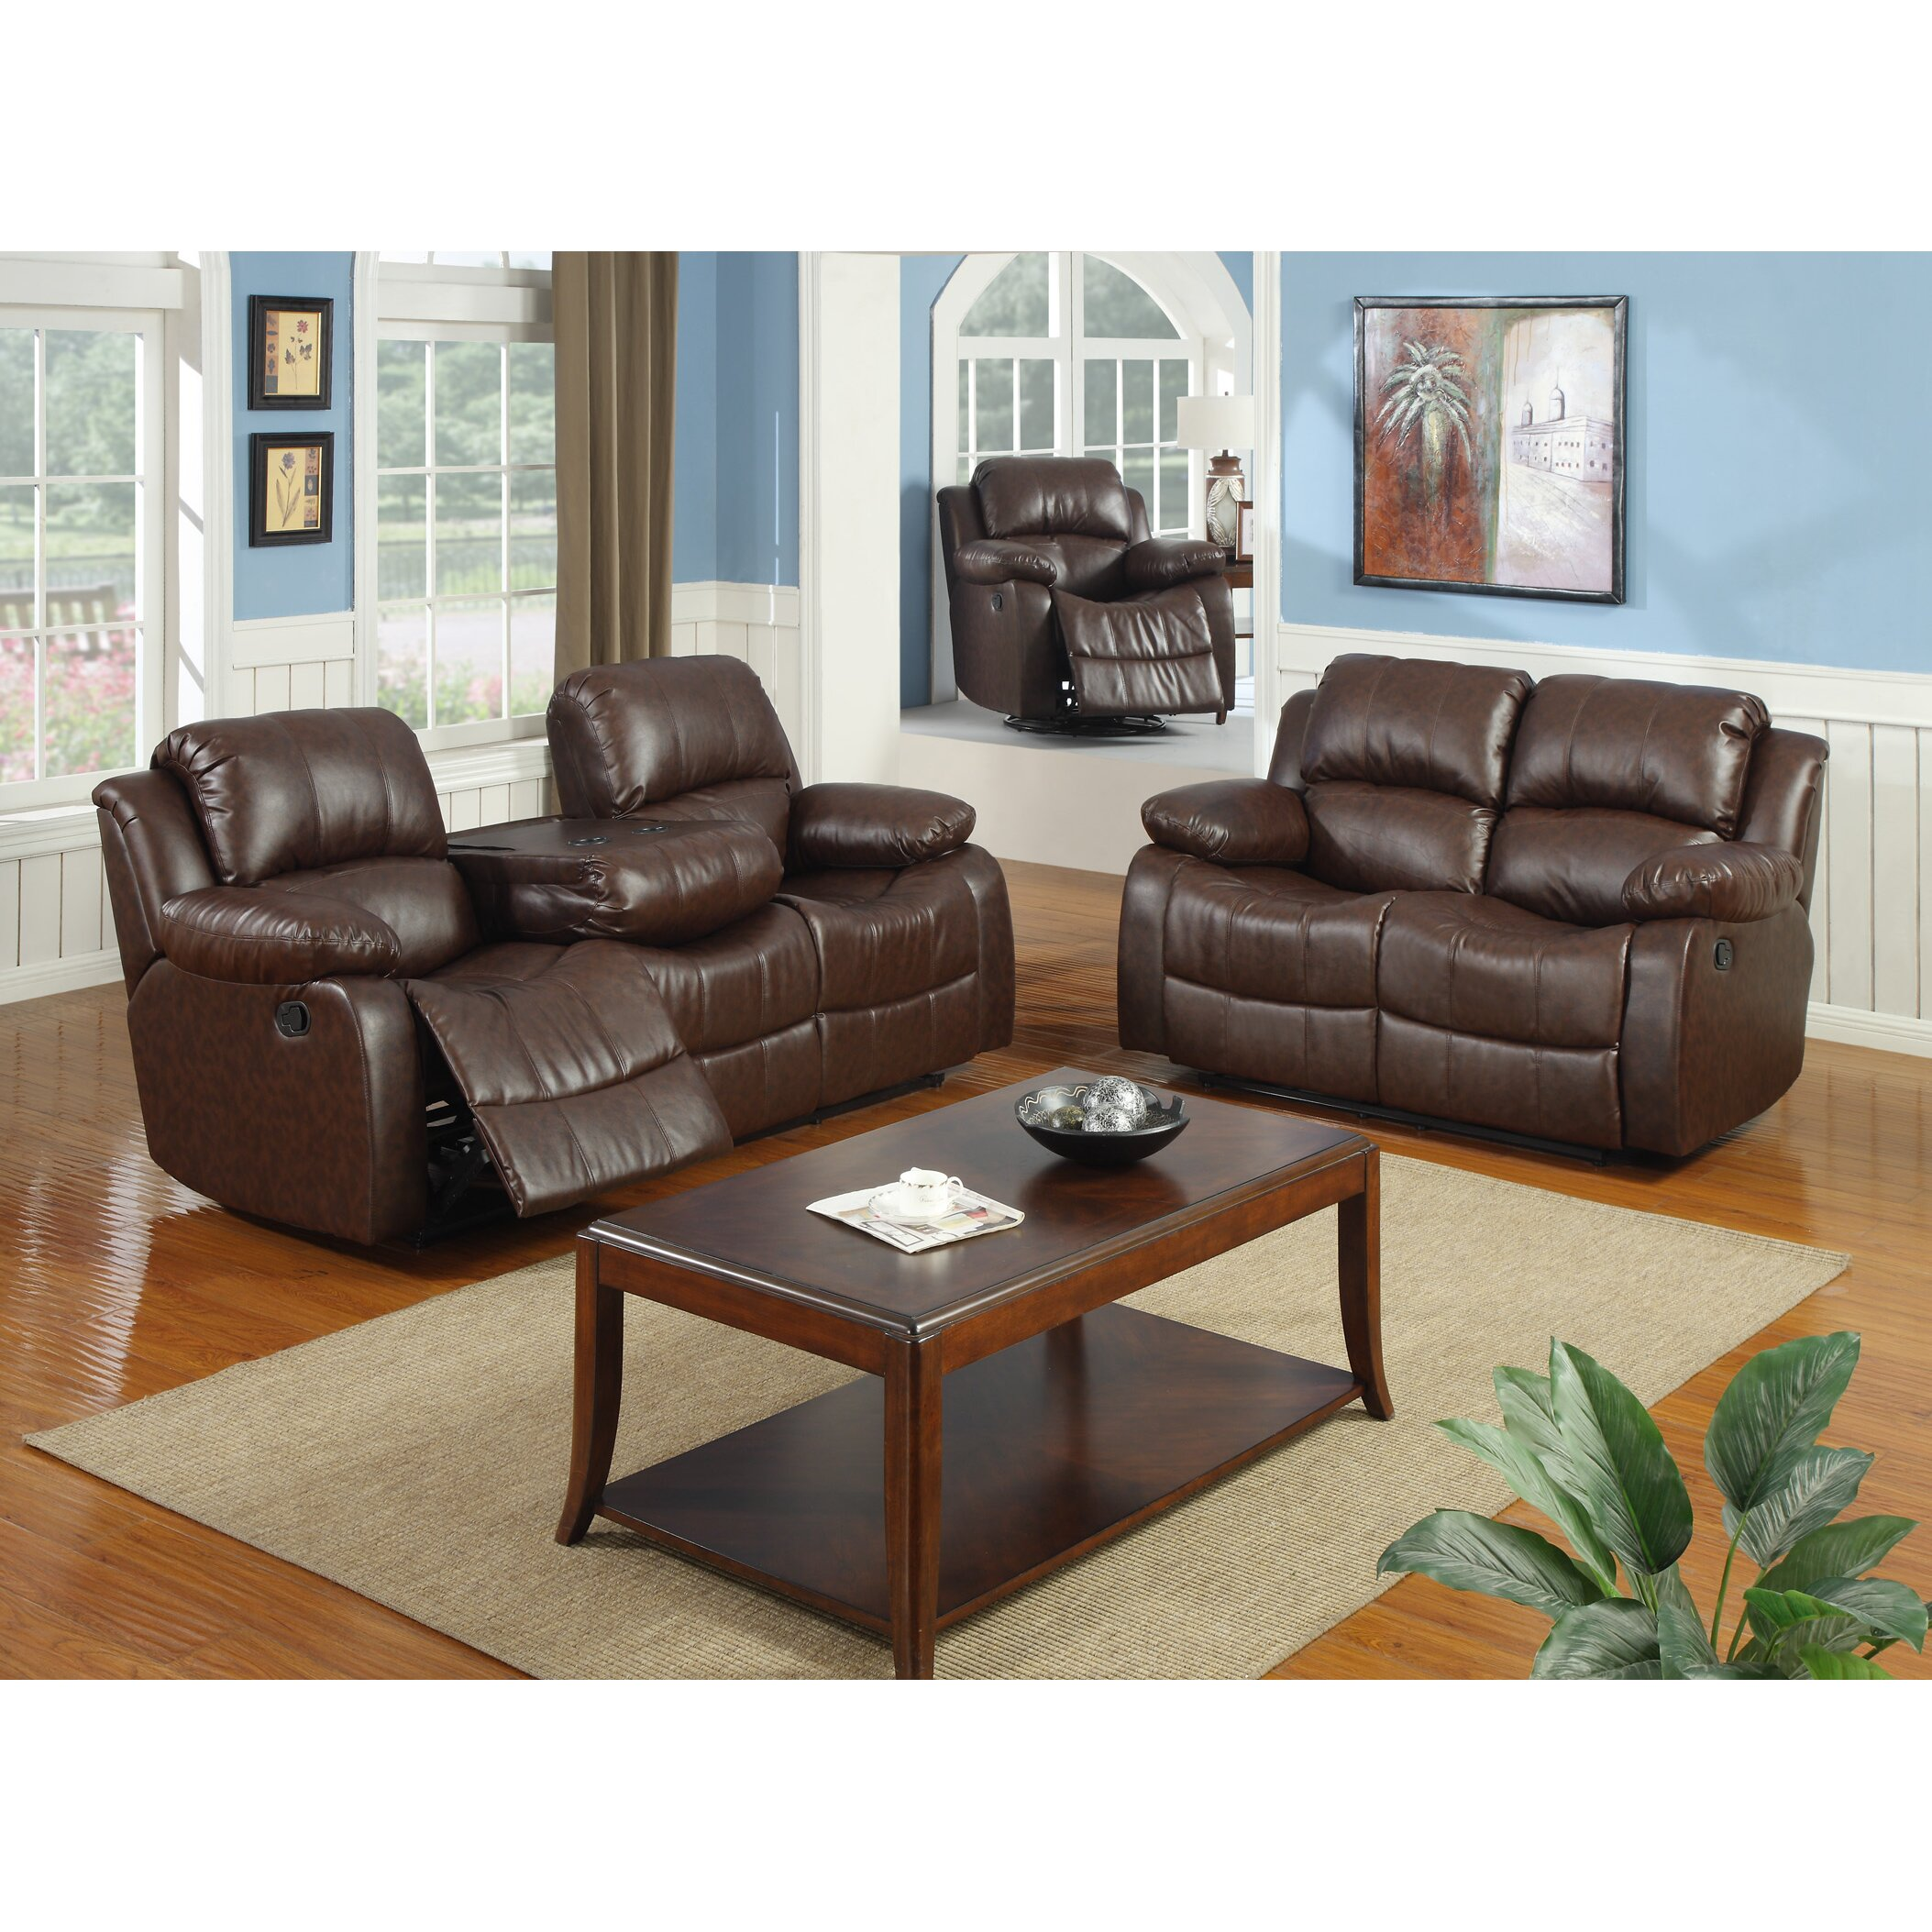 Best quality furniture bonded leather 3 piece recliner - Best quality living room furniture ...